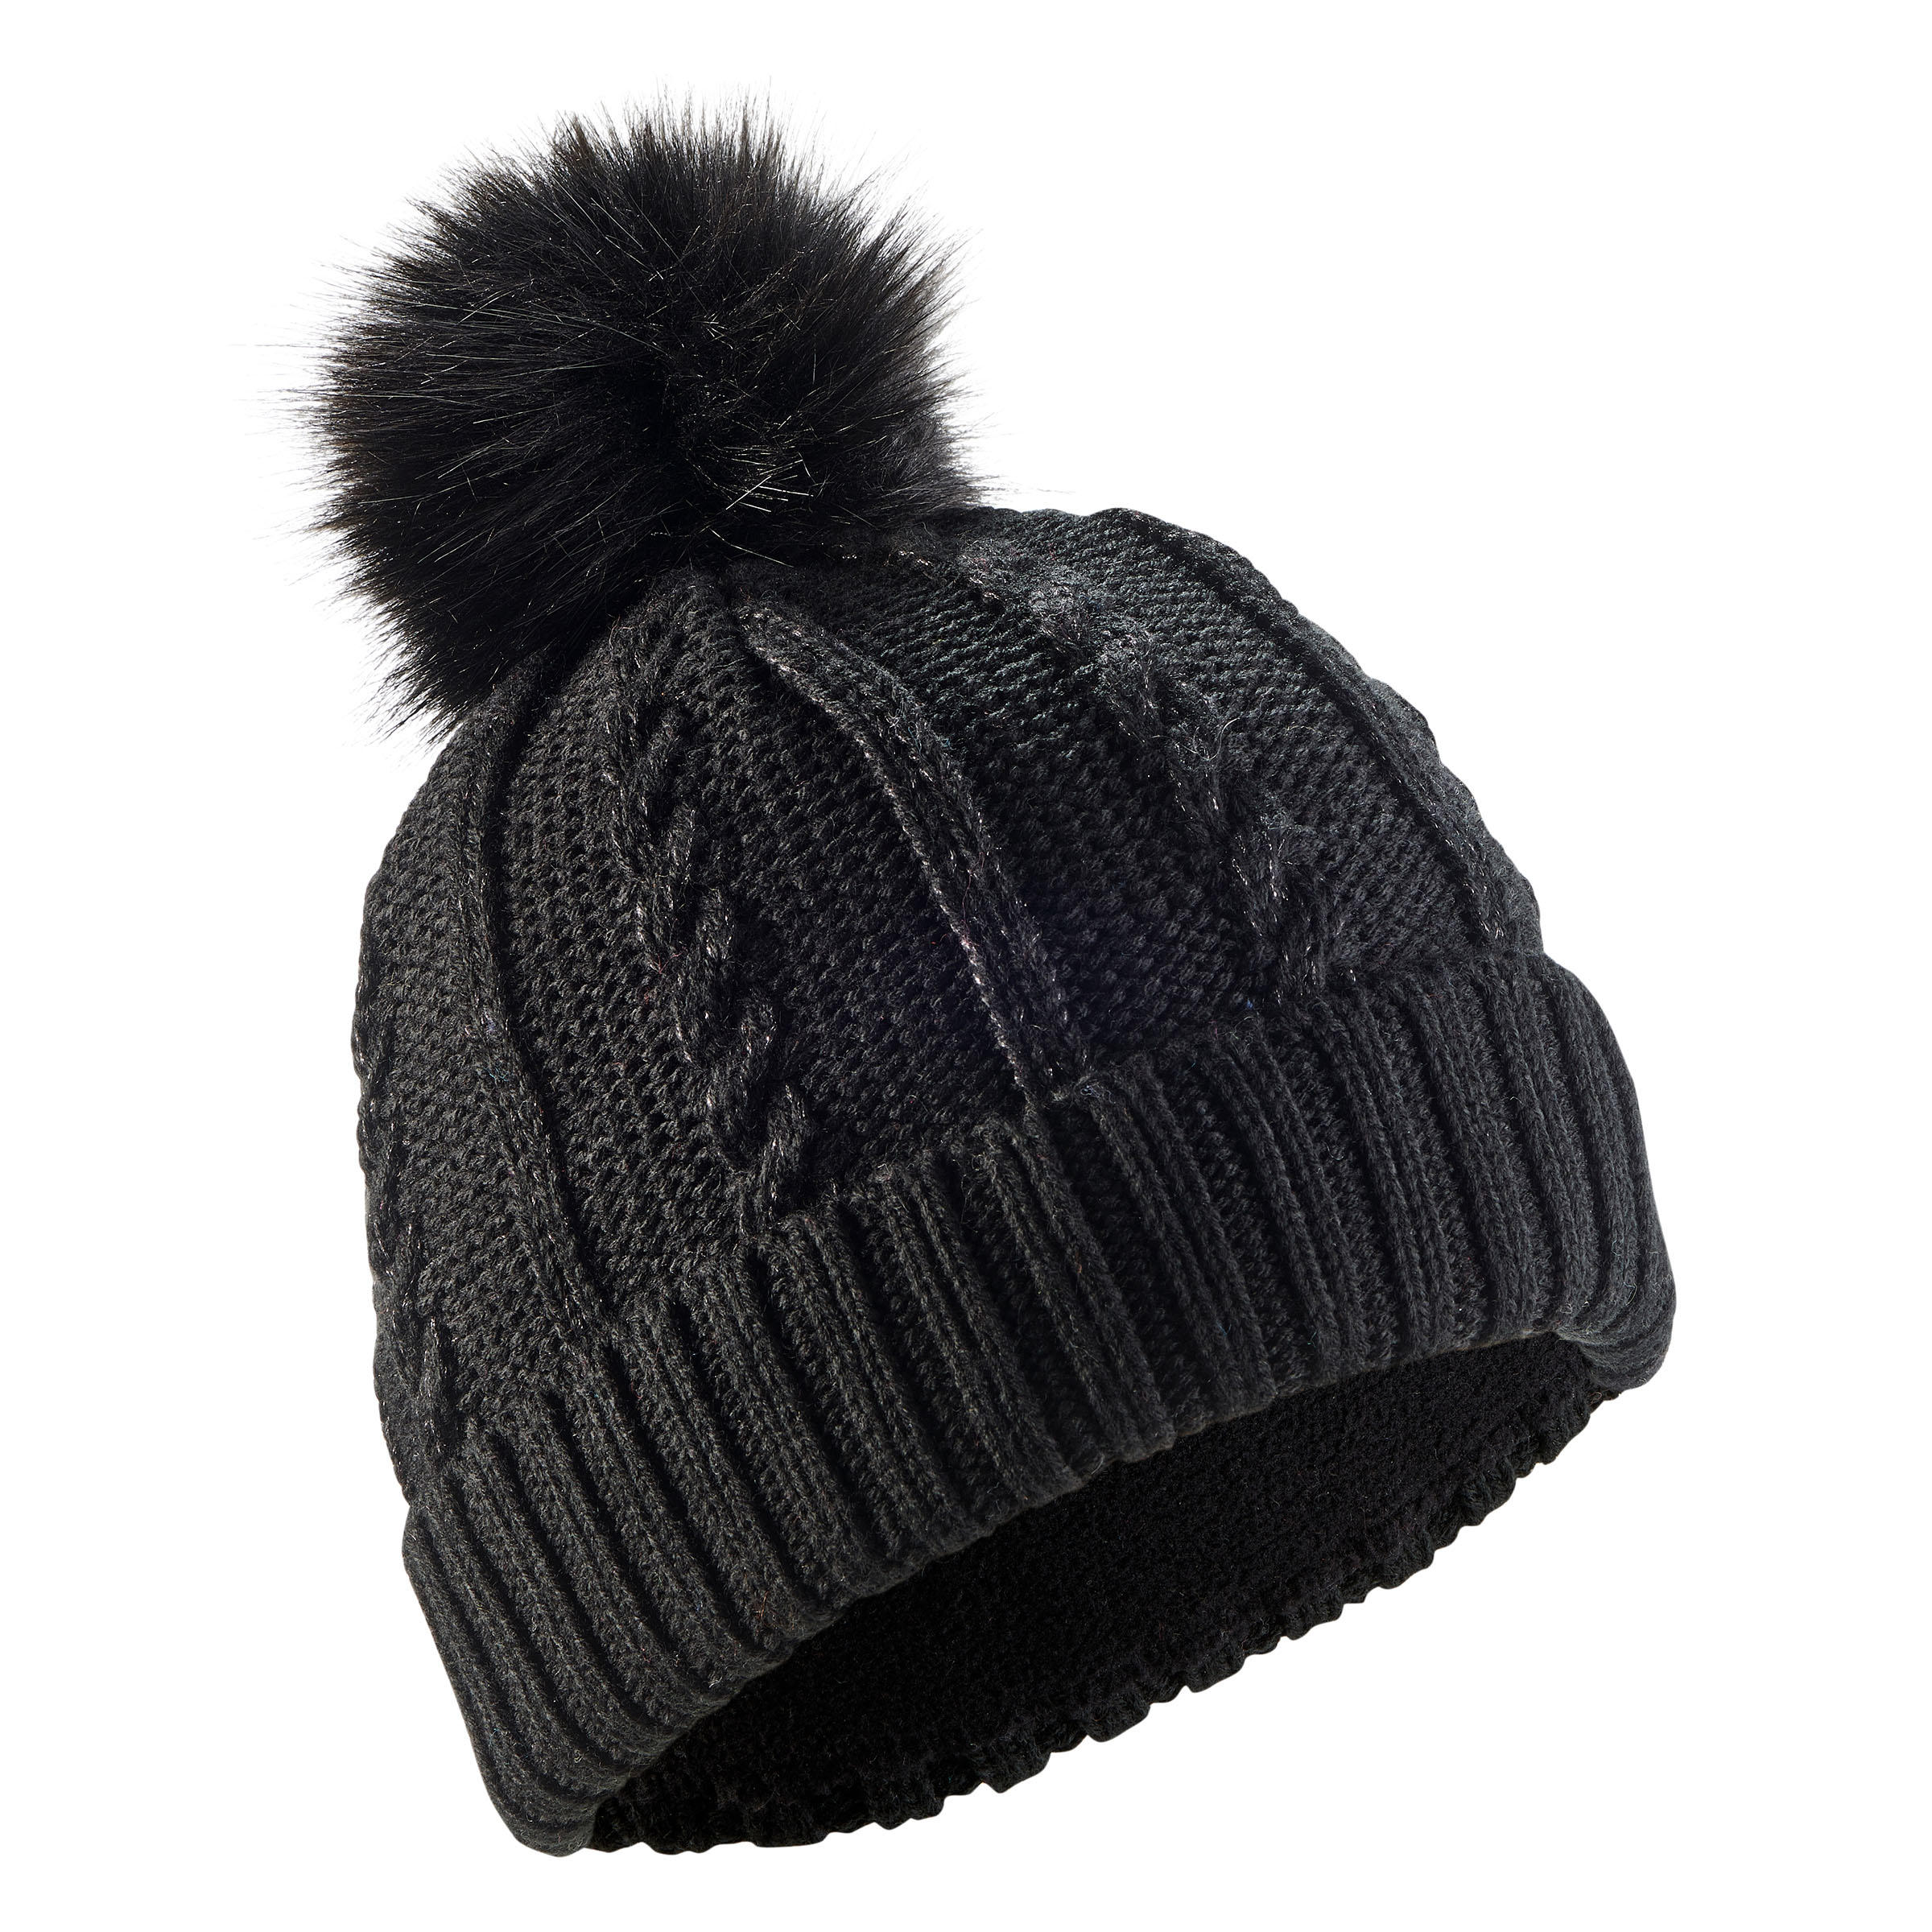 CABLE STITCH ADULT FUR SKI HAT BLACK